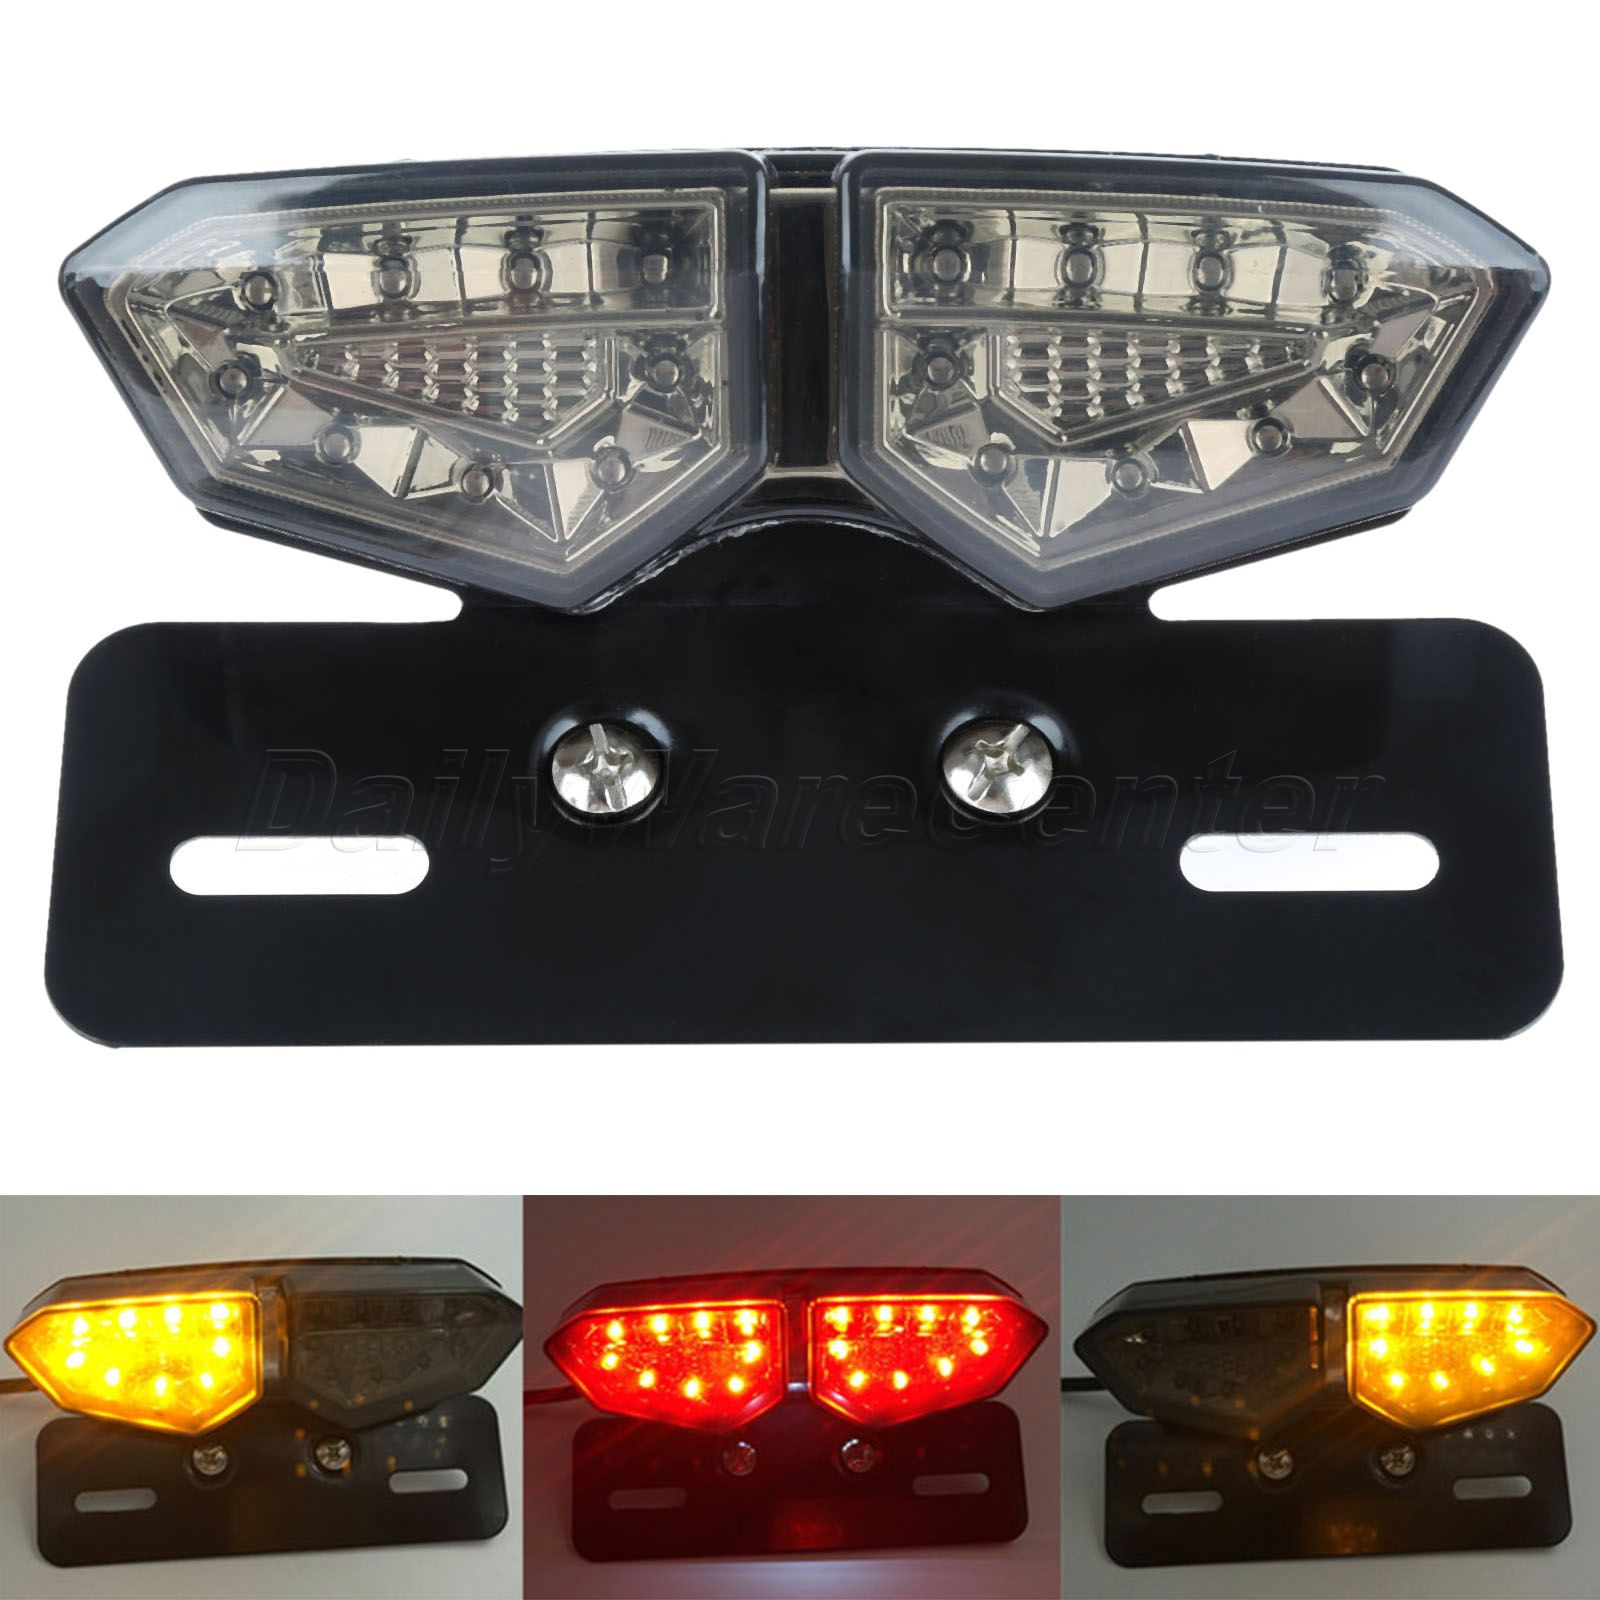 Mgoodoo Smoke Motorcycle Led License Plate Light Integrated Rear Tail Brake Stop Light Turn Signal Indicator Lamp For Cafe Racer